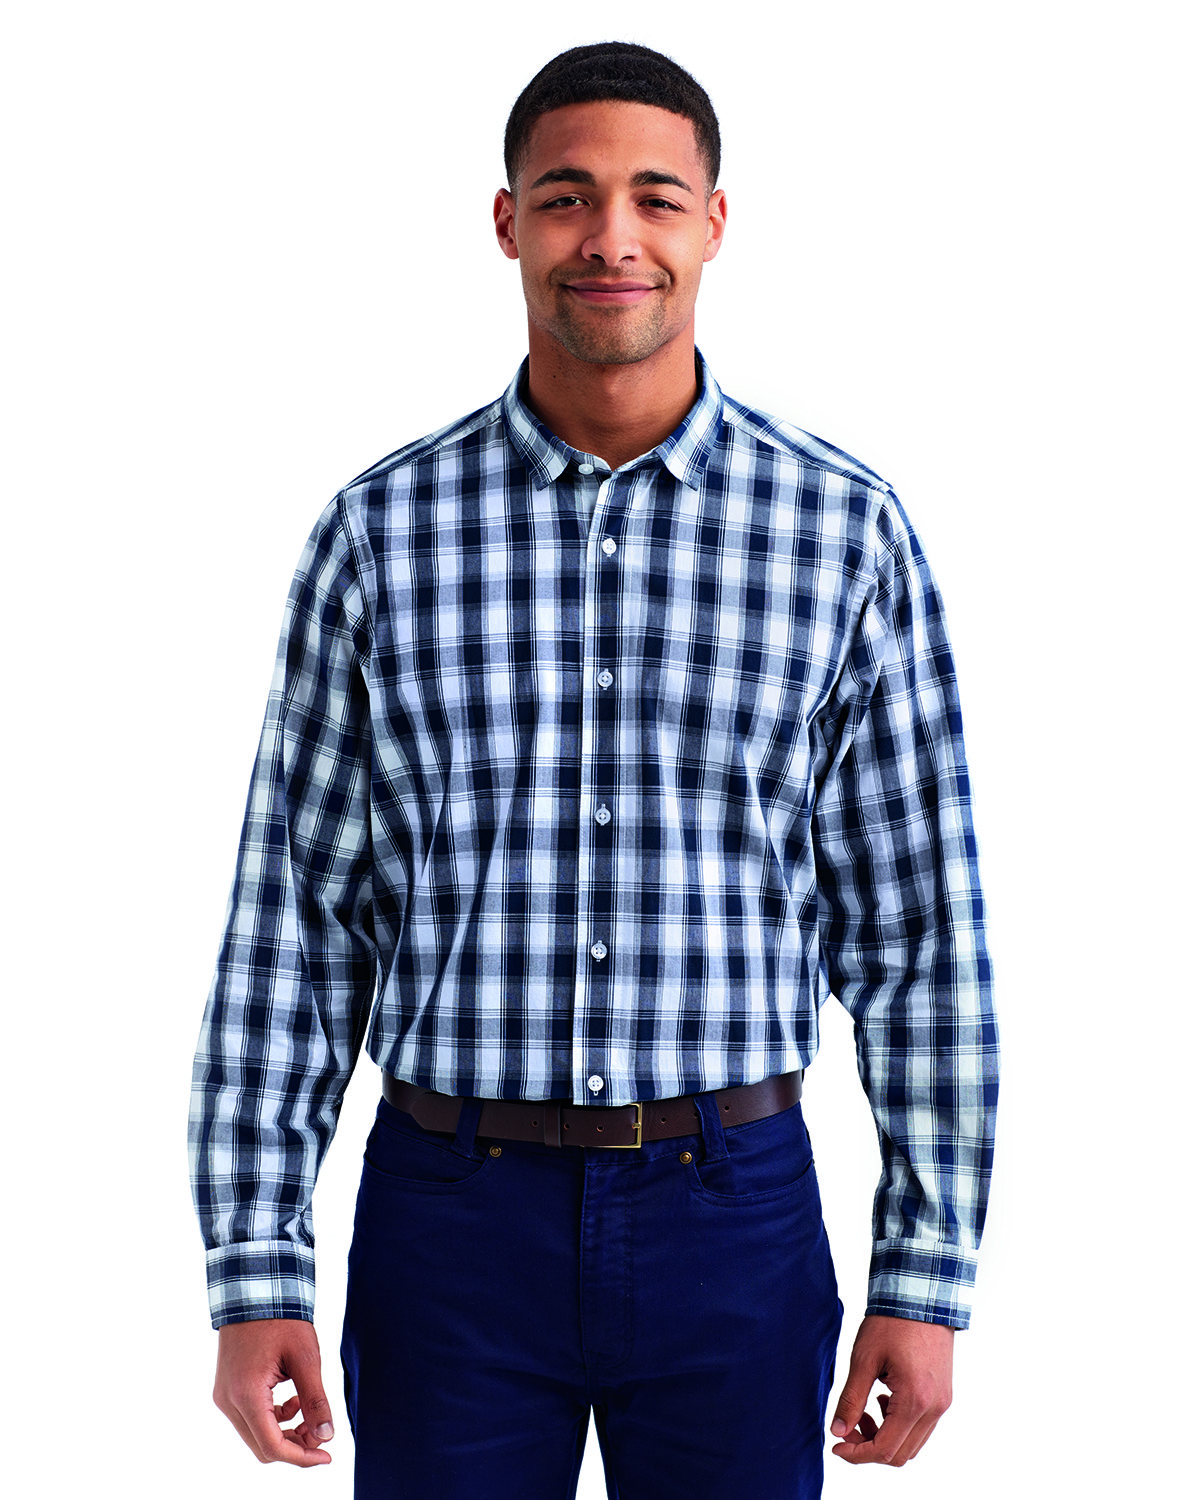 Artisan Collection by Reprime Men's Mulligan Check Long-Sleeve Cotton Shirt WHITE/ NAVY